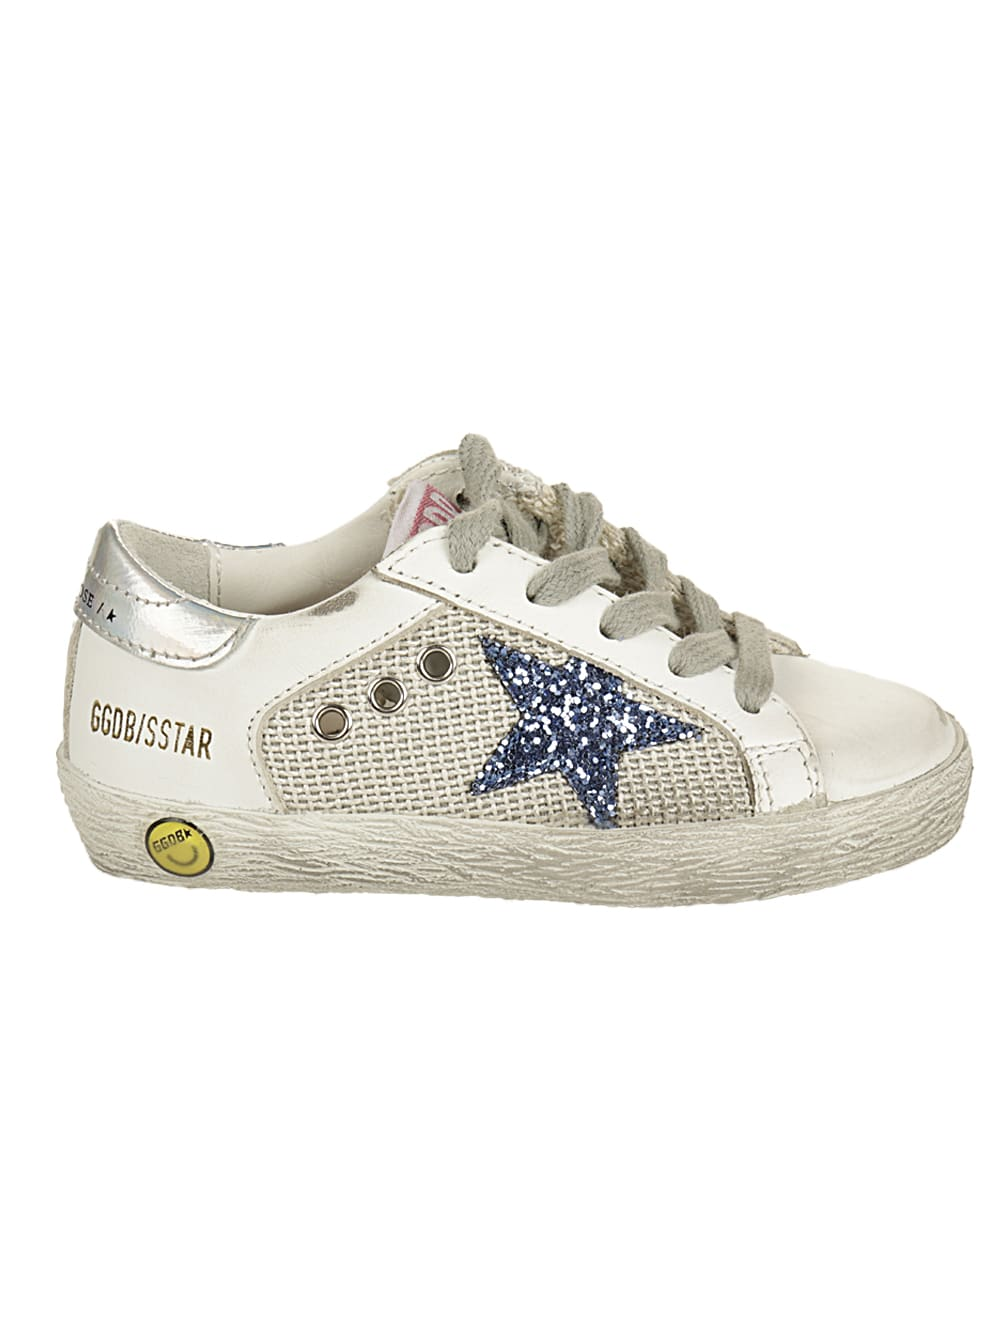 Golden Goose Leathers SUPERSTAR NET AND LEATHER RUPPER GLITTER STAR MIRR